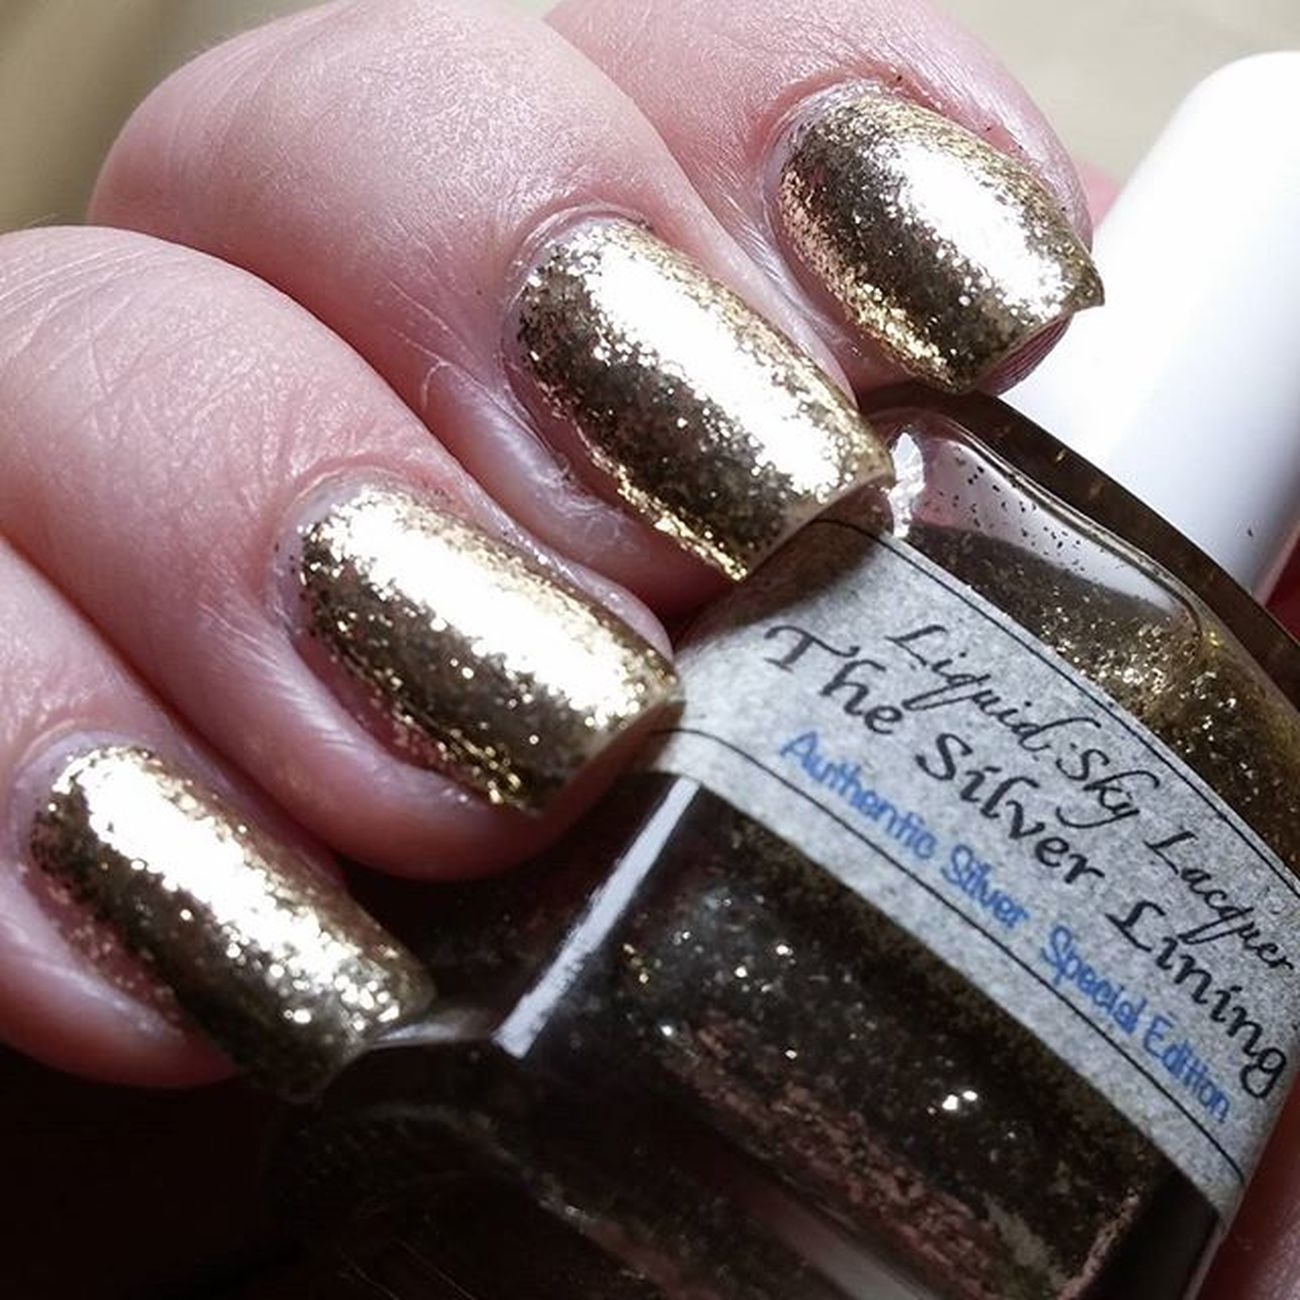 And Day 8 - Metallic 31dc2015 on time 😉 used Liquidskylacquer - the silver lining (3 coats) so sparkling 😍 Itrustindiepolish